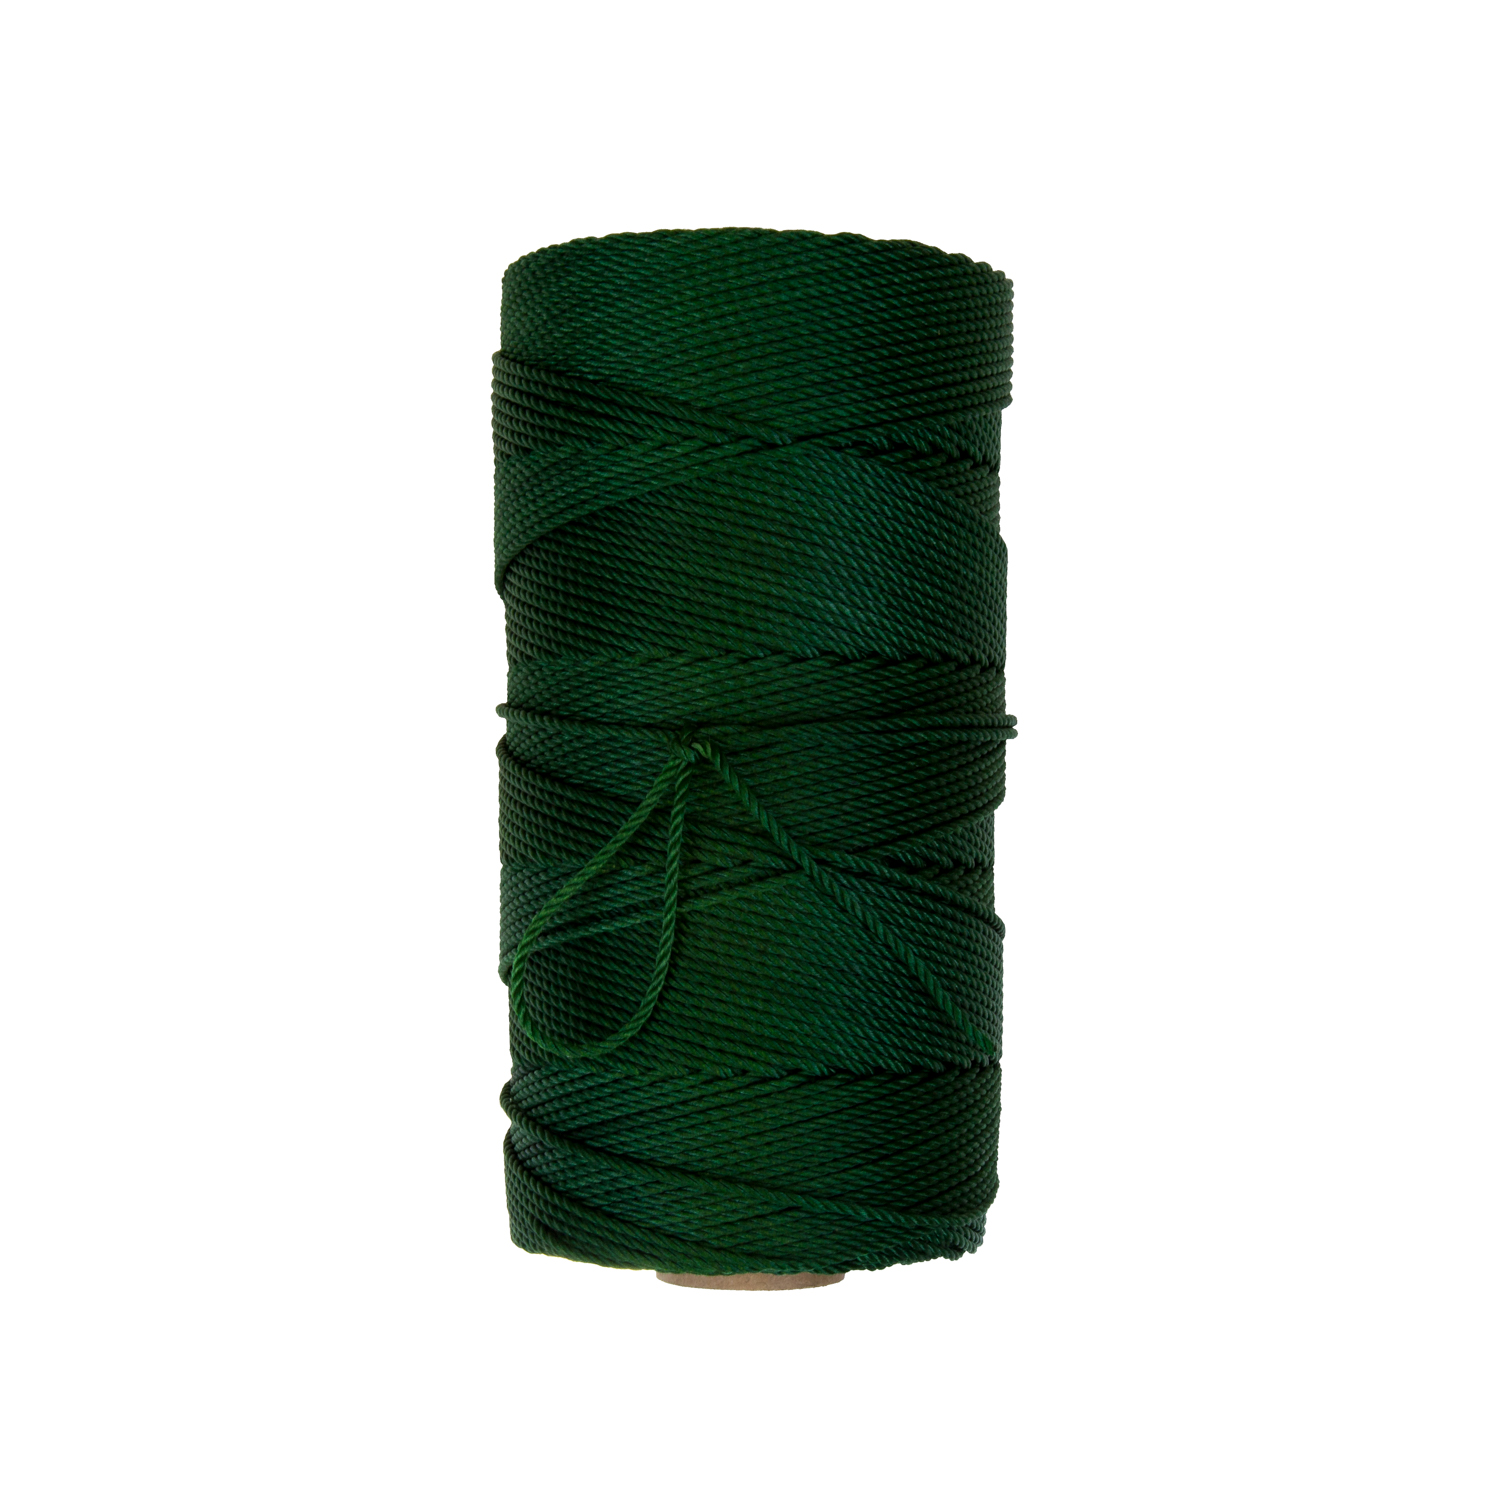 Dyed Green Seine Twine